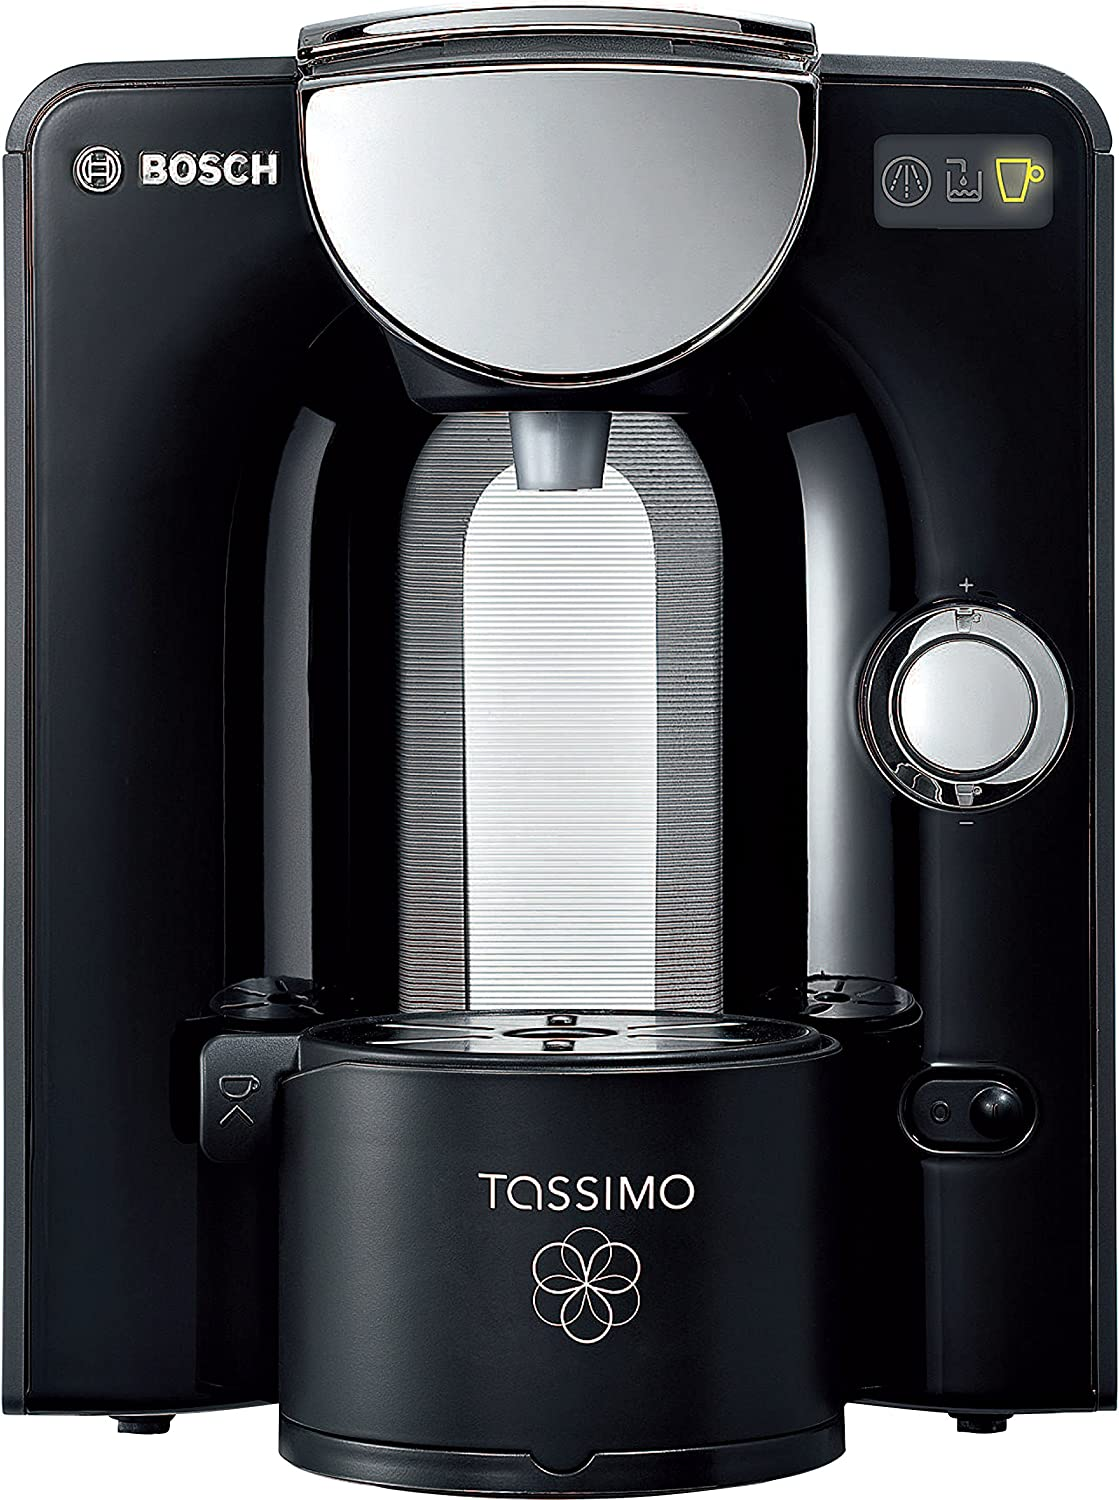 Amazon.com: Bosch Tassimo TAS5542GB Multi Bebidas Calientes ...